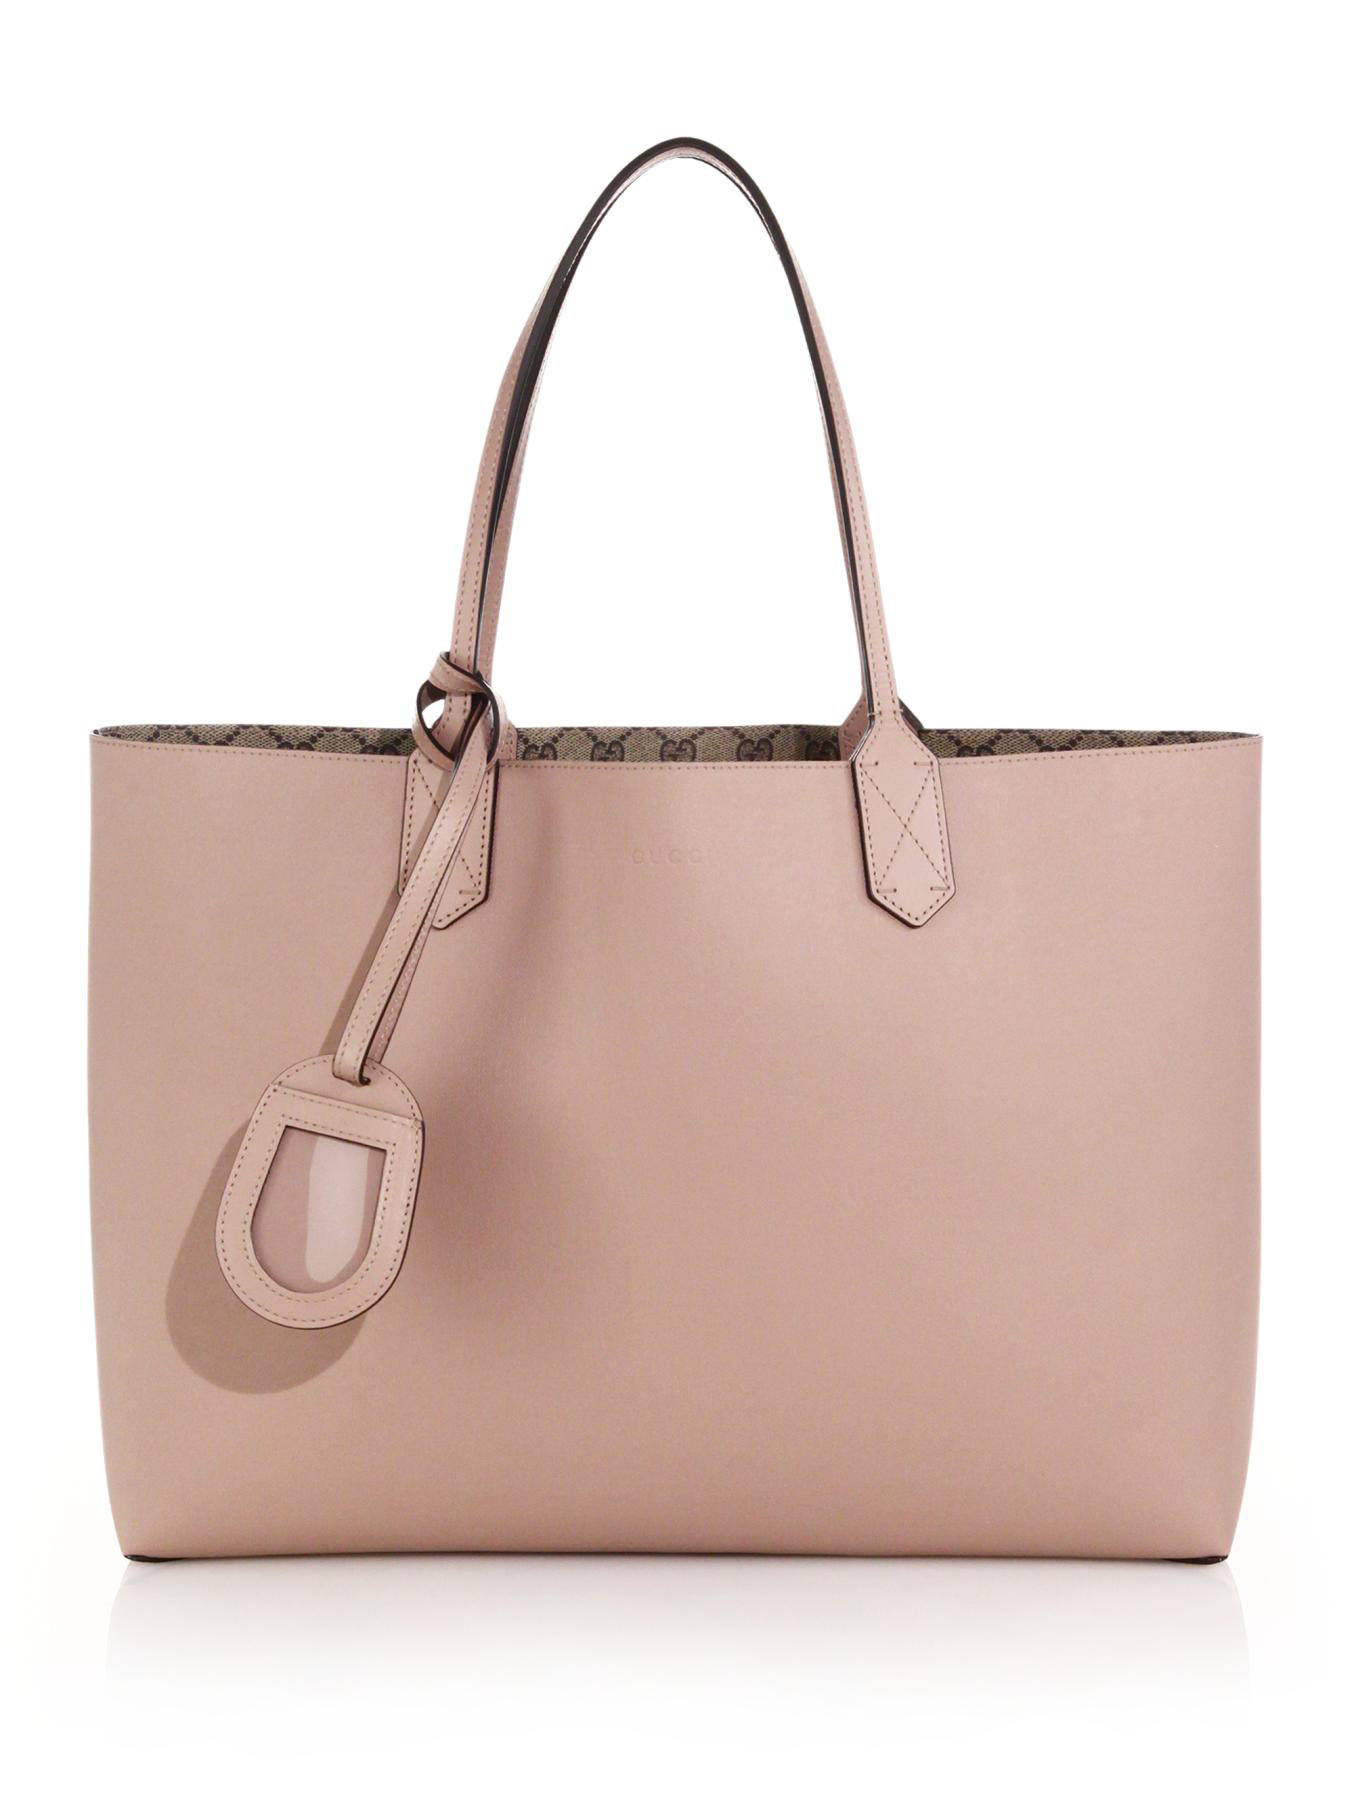 97c4f94141a6 Gucci GG Reversible Medium Leather Tote in Pink   Lyst